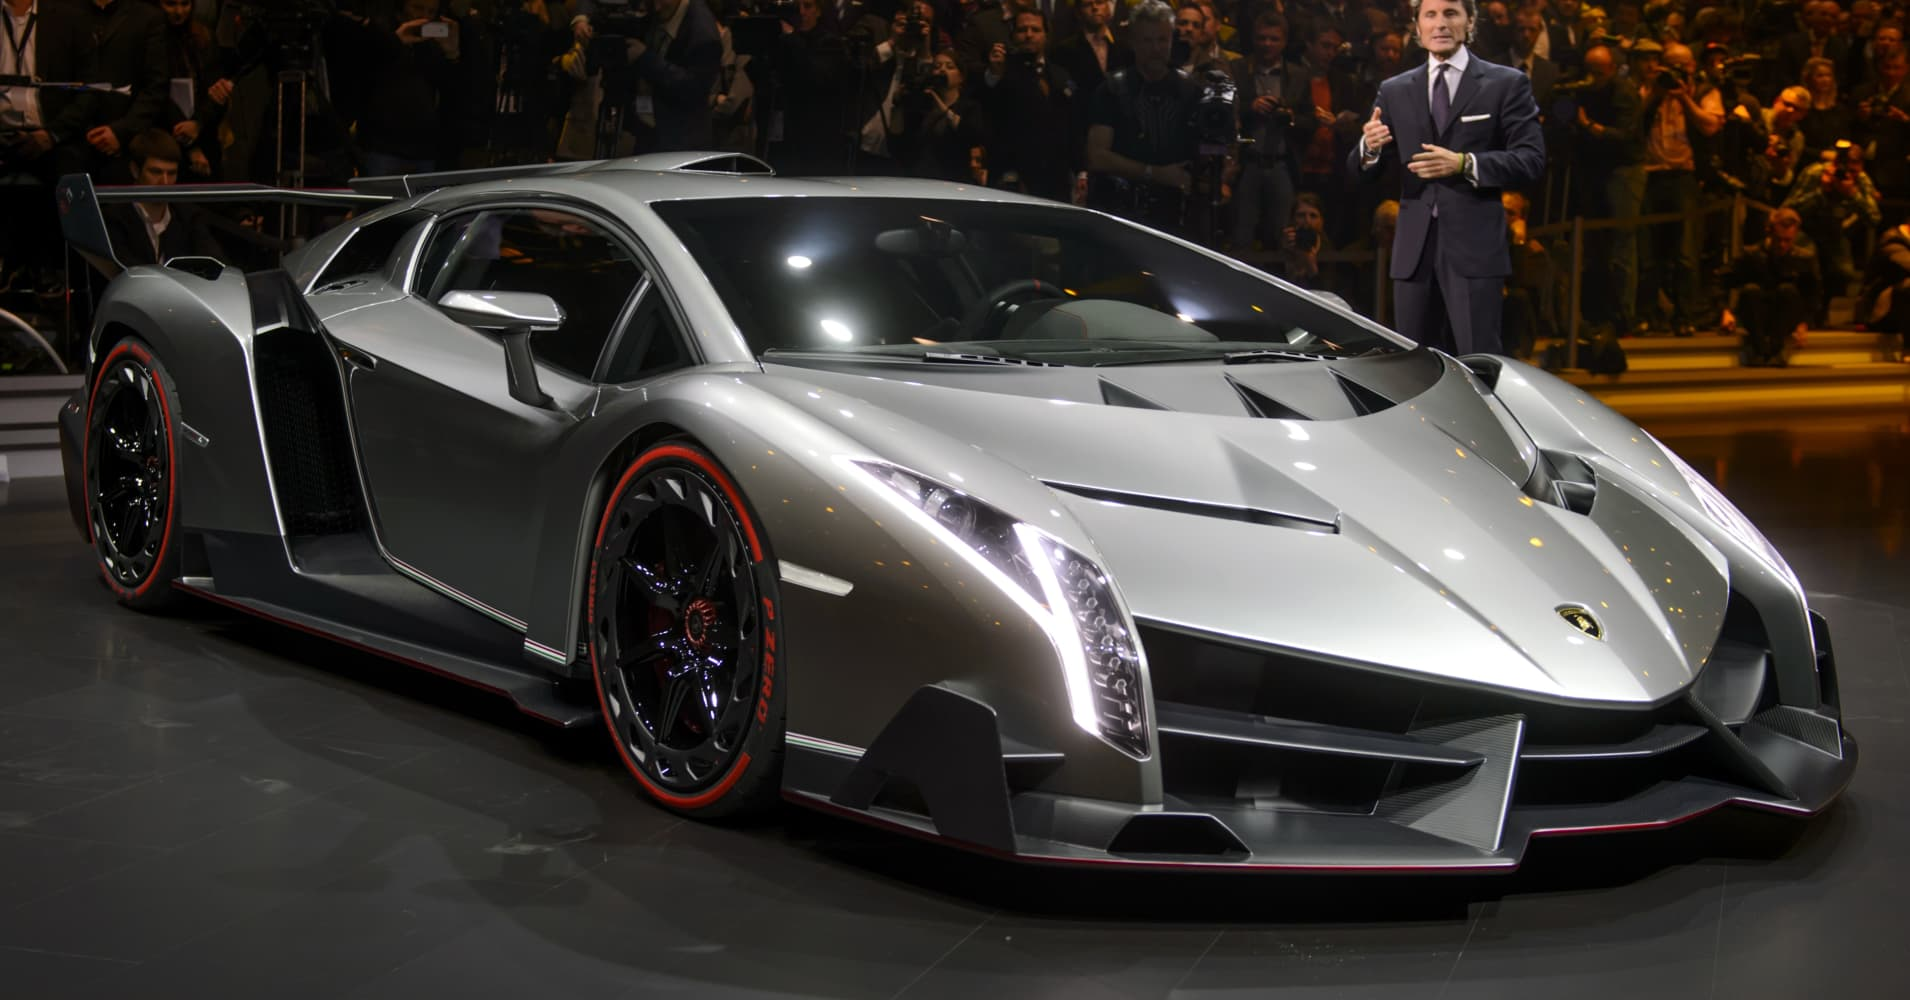 The 4 Million Lamborghini Veneno S Maiden Voyage